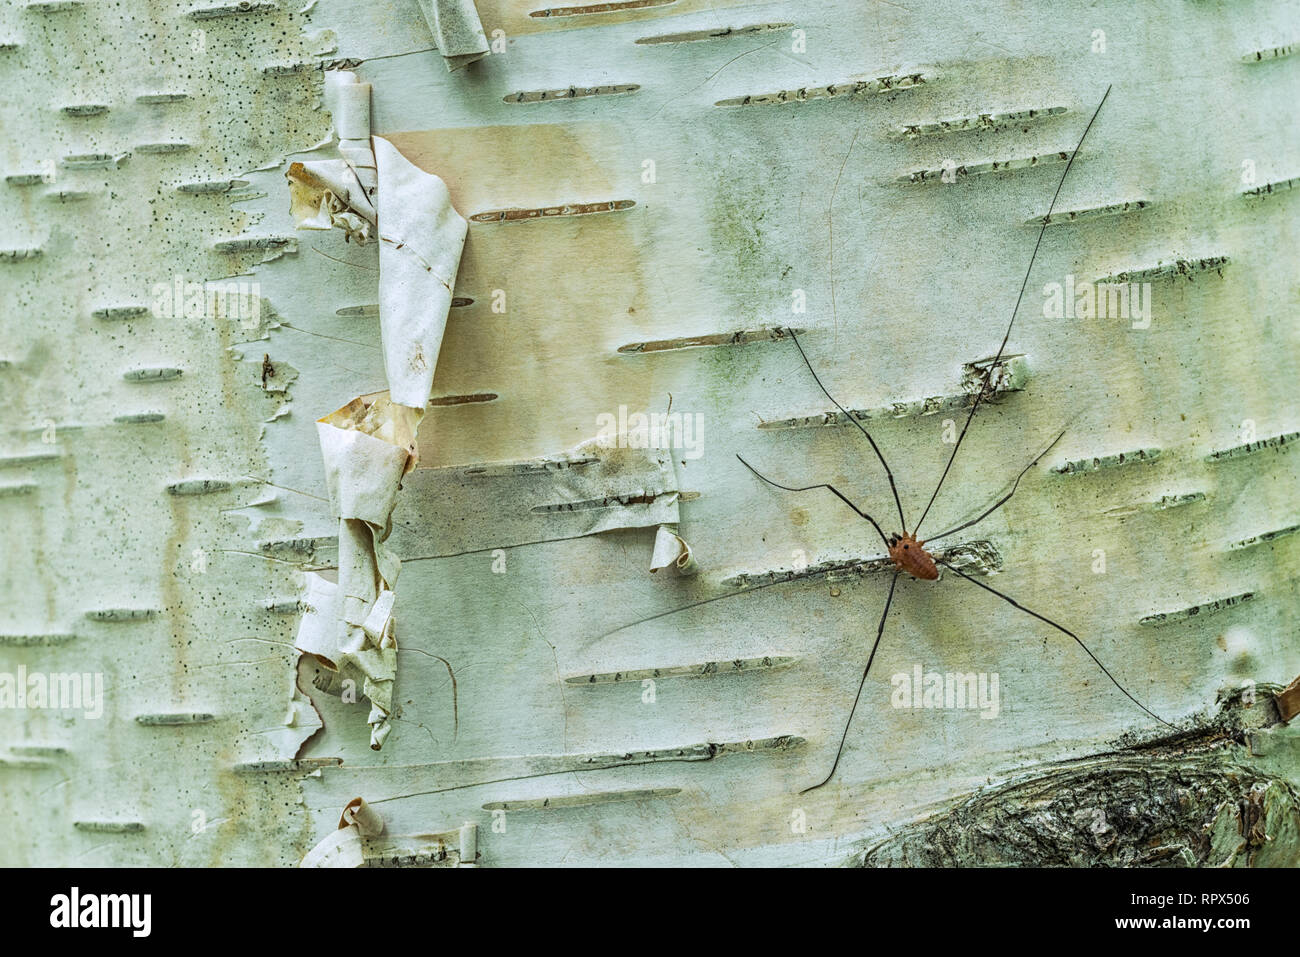 zoology / animals, arachnid (arachnida), Brown Dady Long Legs Spider (Phalangium opilio) on white pape, Additional-Rights-Clearance-Info-Not-Available - Stock Image